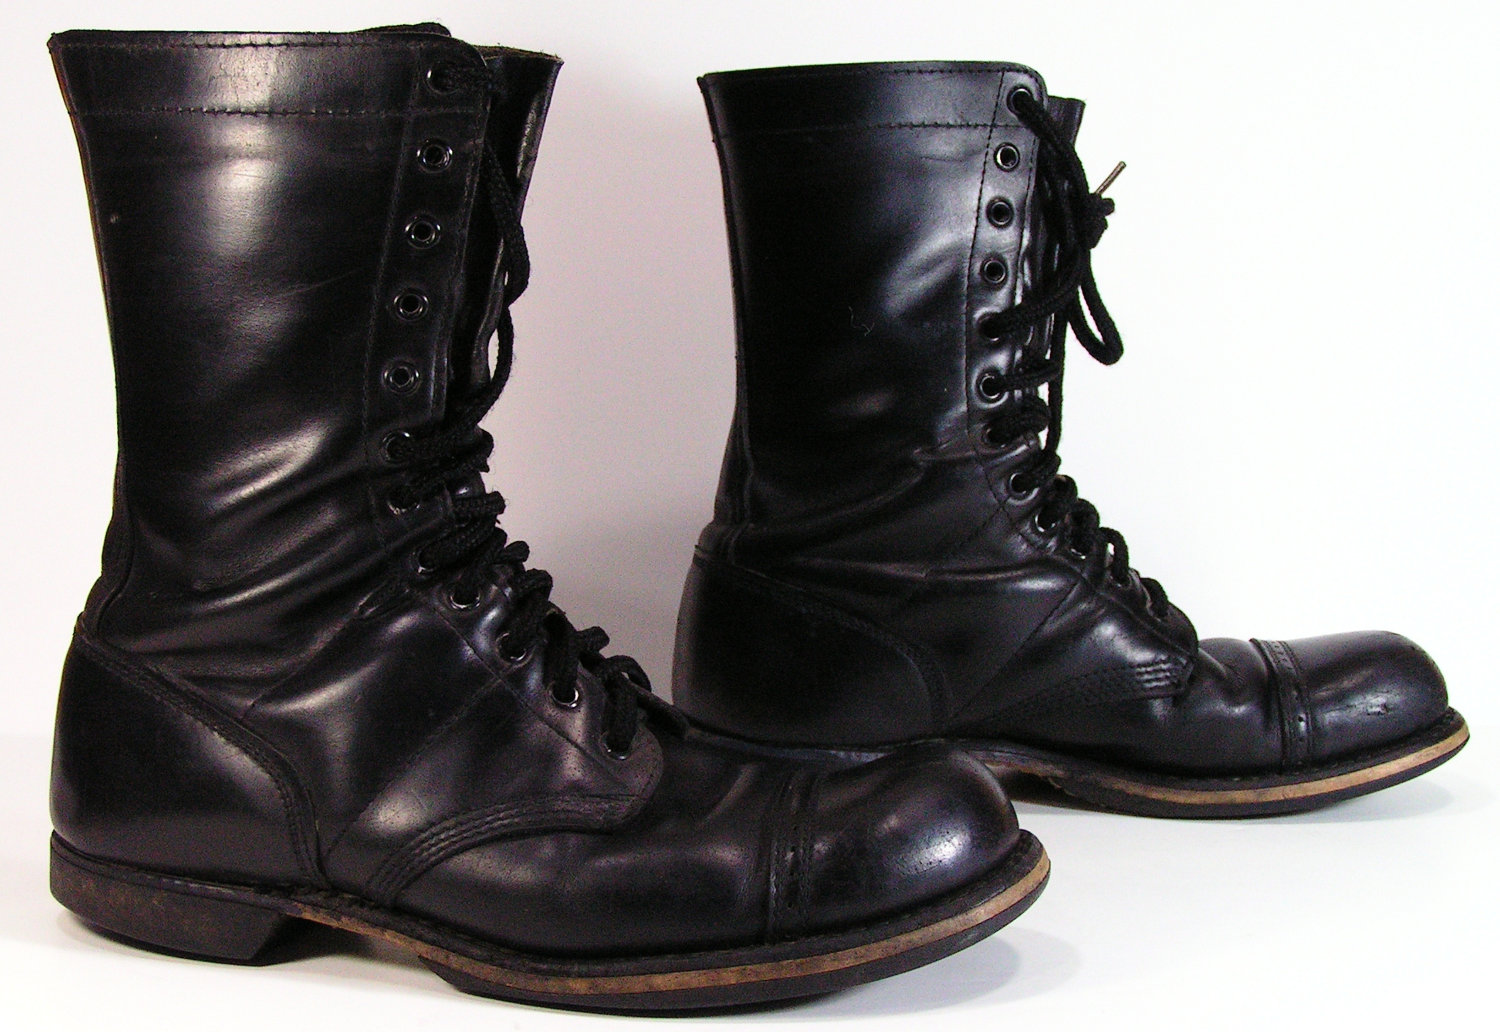 Black Combat Boots For Men OGDUW31K